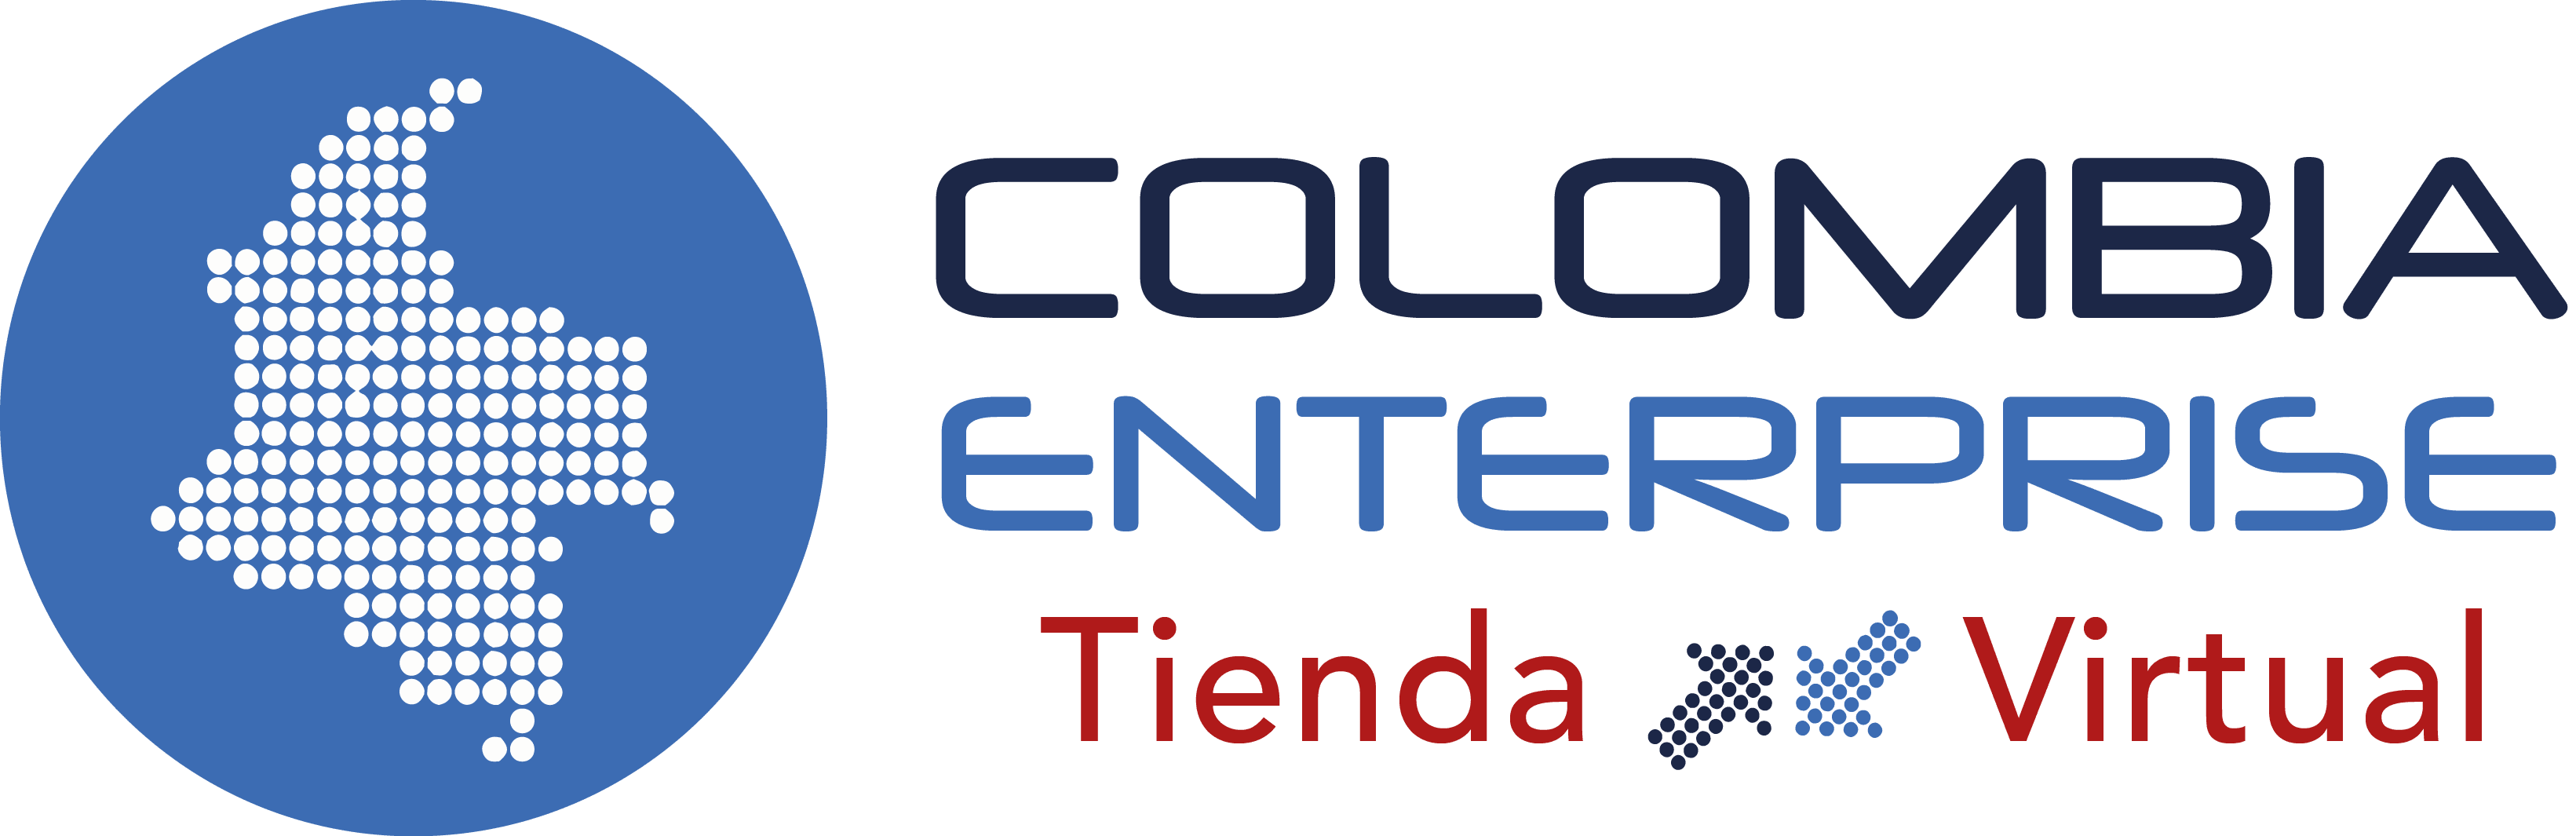 Colombia Enterprise S.A.S.